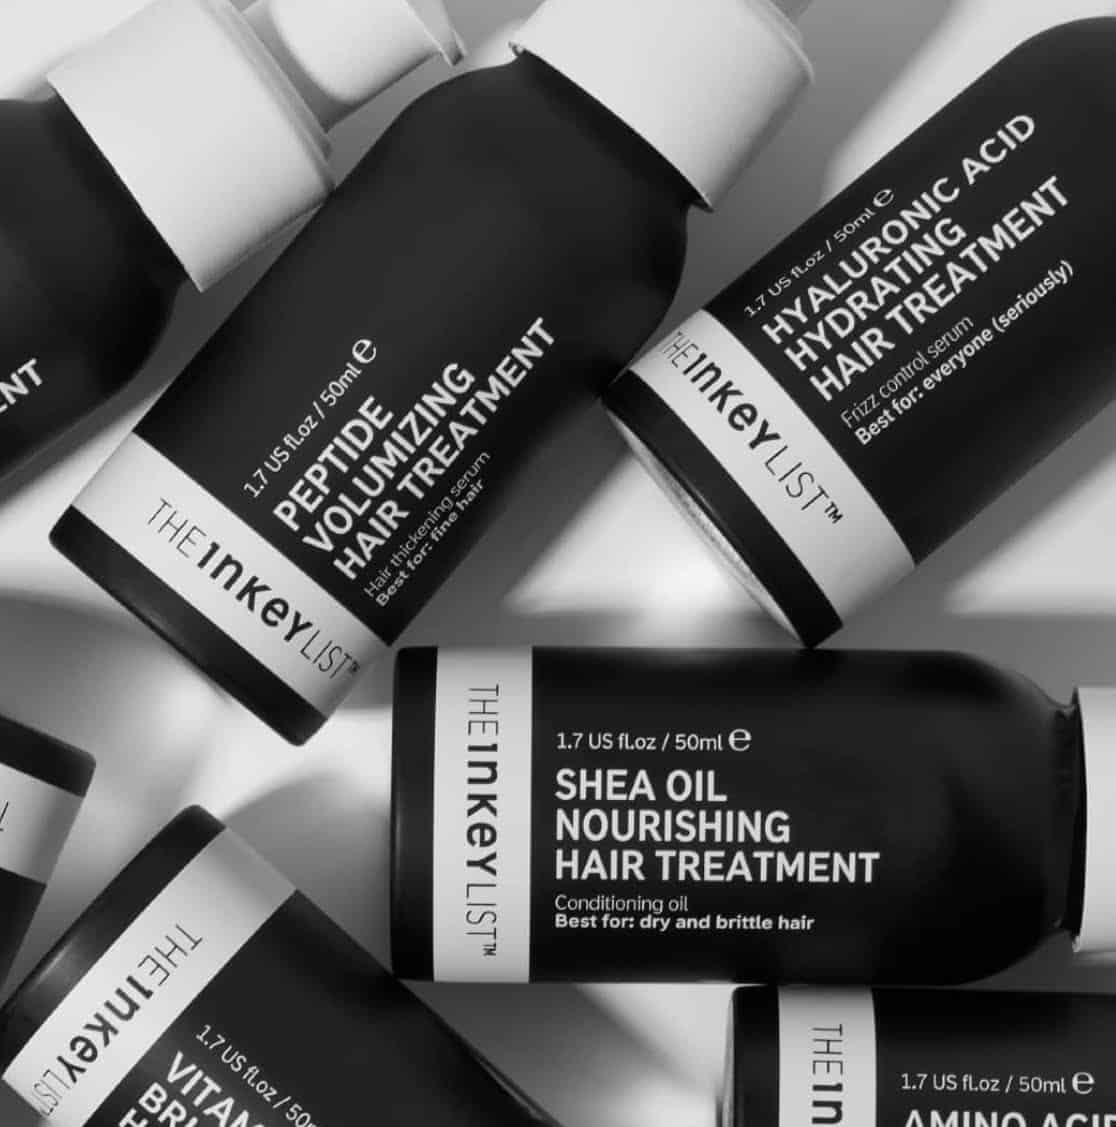 The Inkey List Haircare Collection Launch!